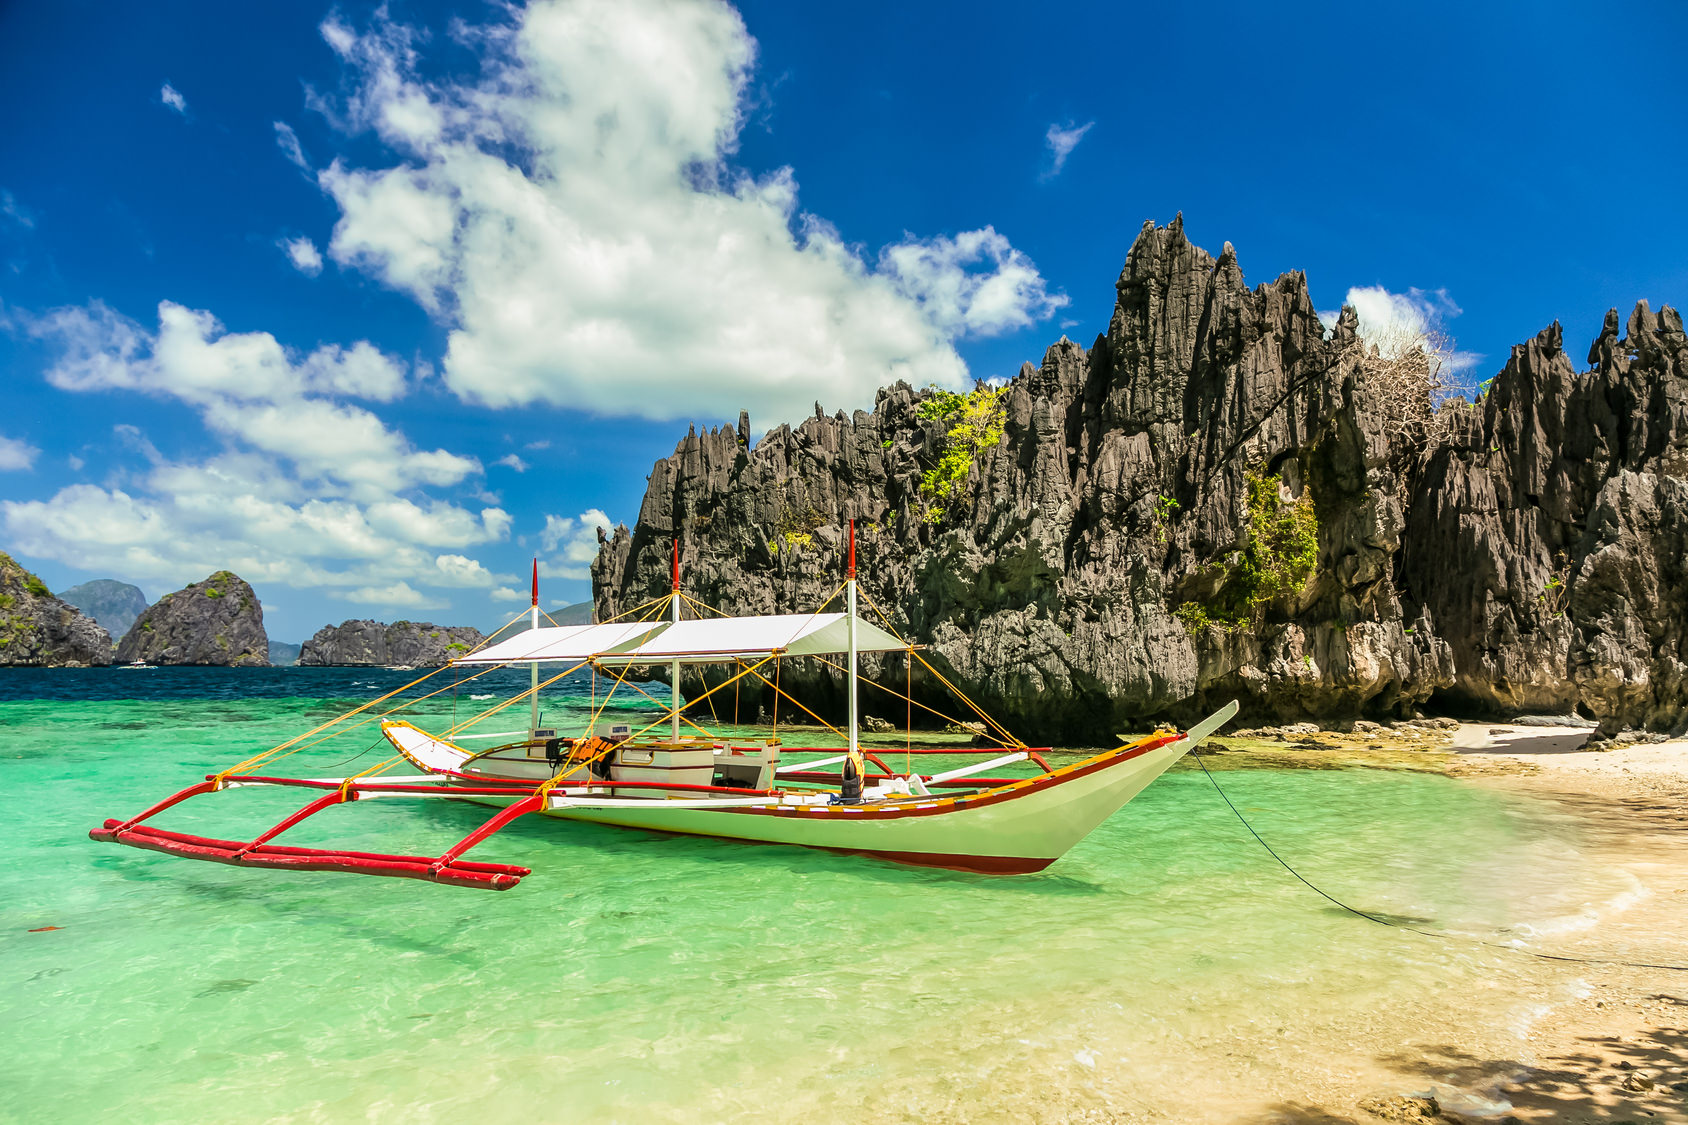 Banca boat at a beautiful beach in Miniloc Island,Philippines